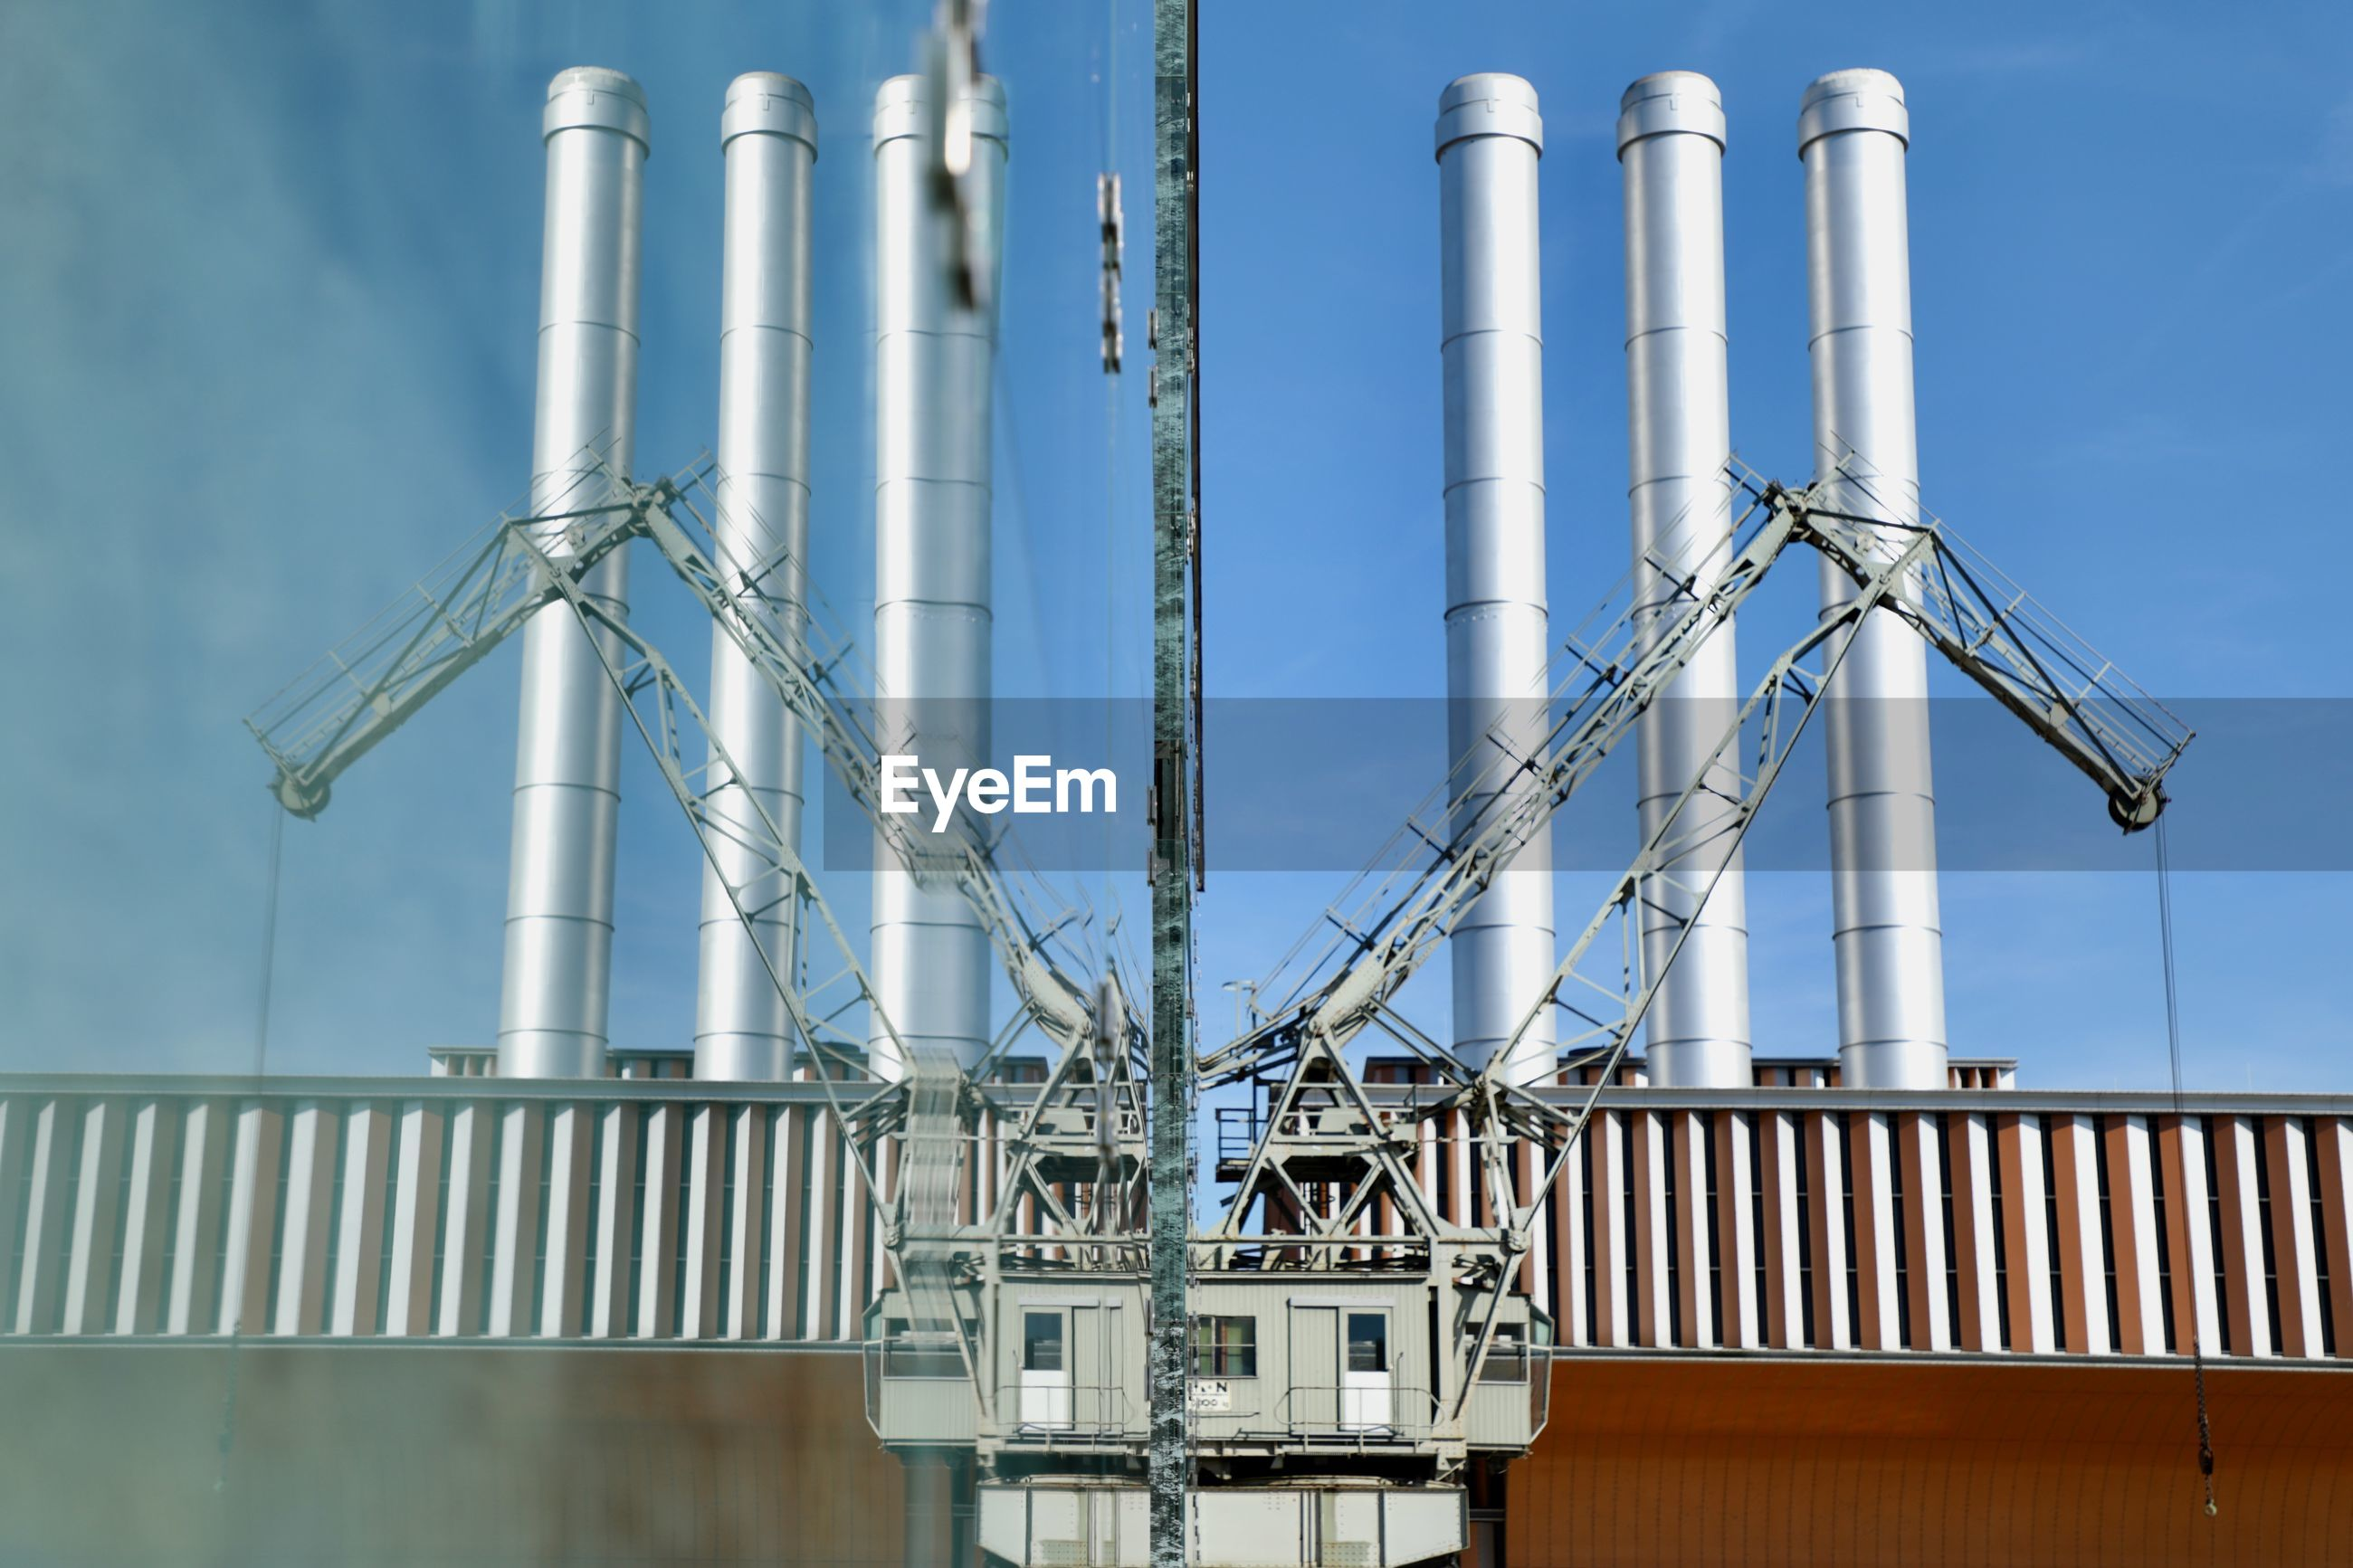 industry, fuel and power generation, factory, oil industry, pipe - tube, oil refinery, no people, pipeline, metal, petrochemical plant, day, smoke stack, built structure, outdoors, power station, refinery, sky, technology